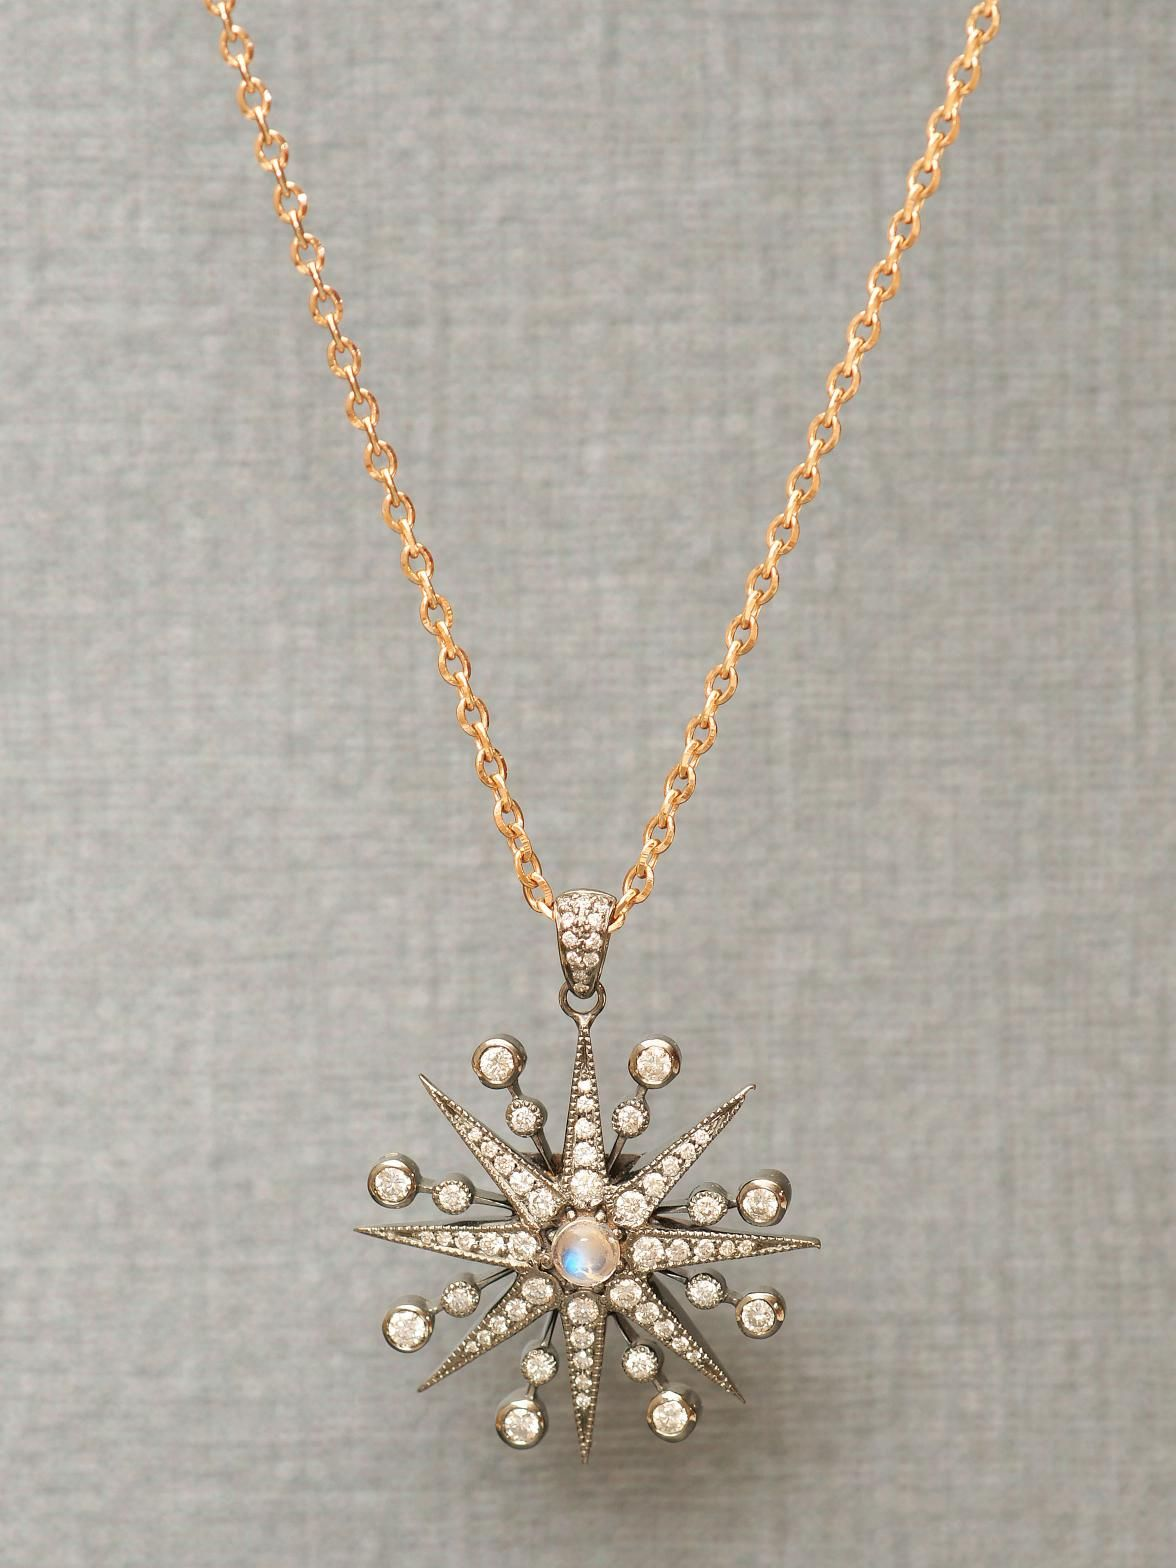 Colette 18k Black and Rose Gold Star Pendant Necklace at London Jewelers!